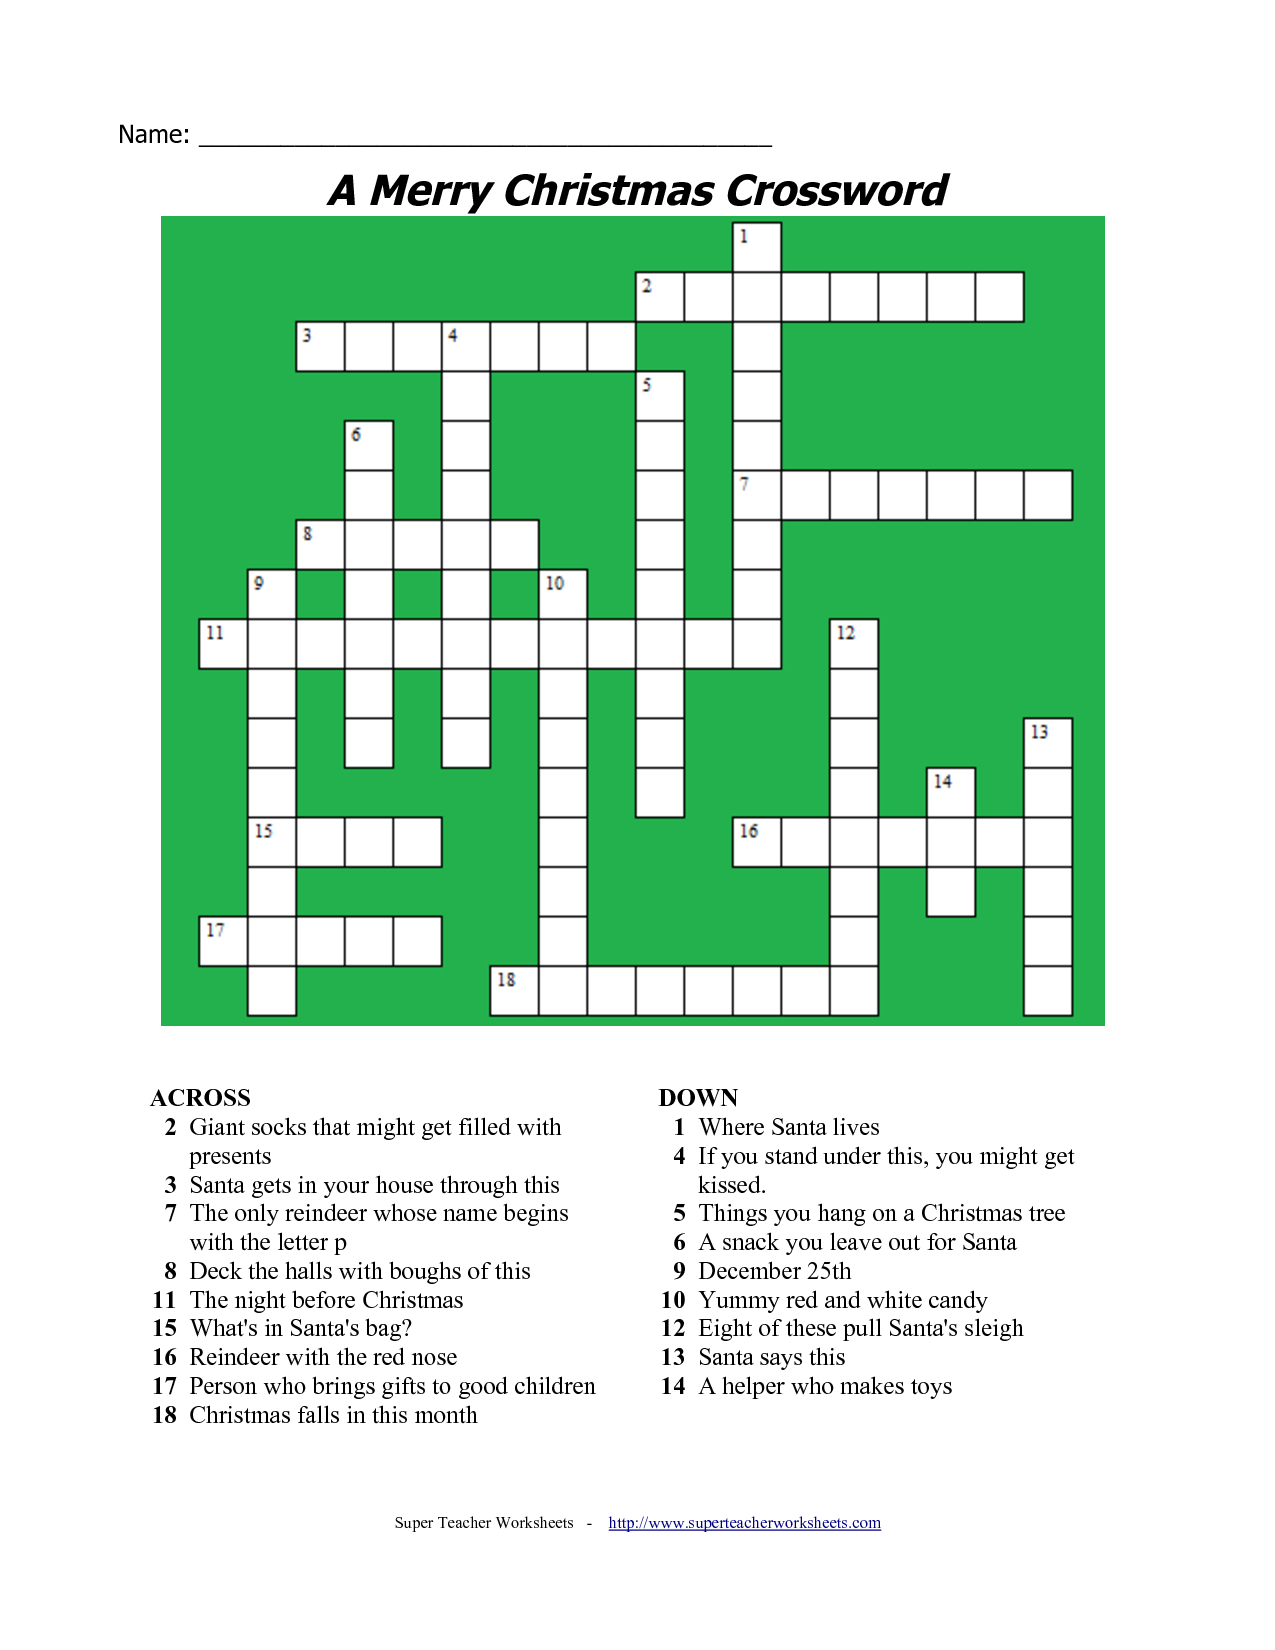 20 Fun Printable Christmas Crossword Puzzles | Kittybabylove - Printable Holiday Crossword Puzzles For Adults